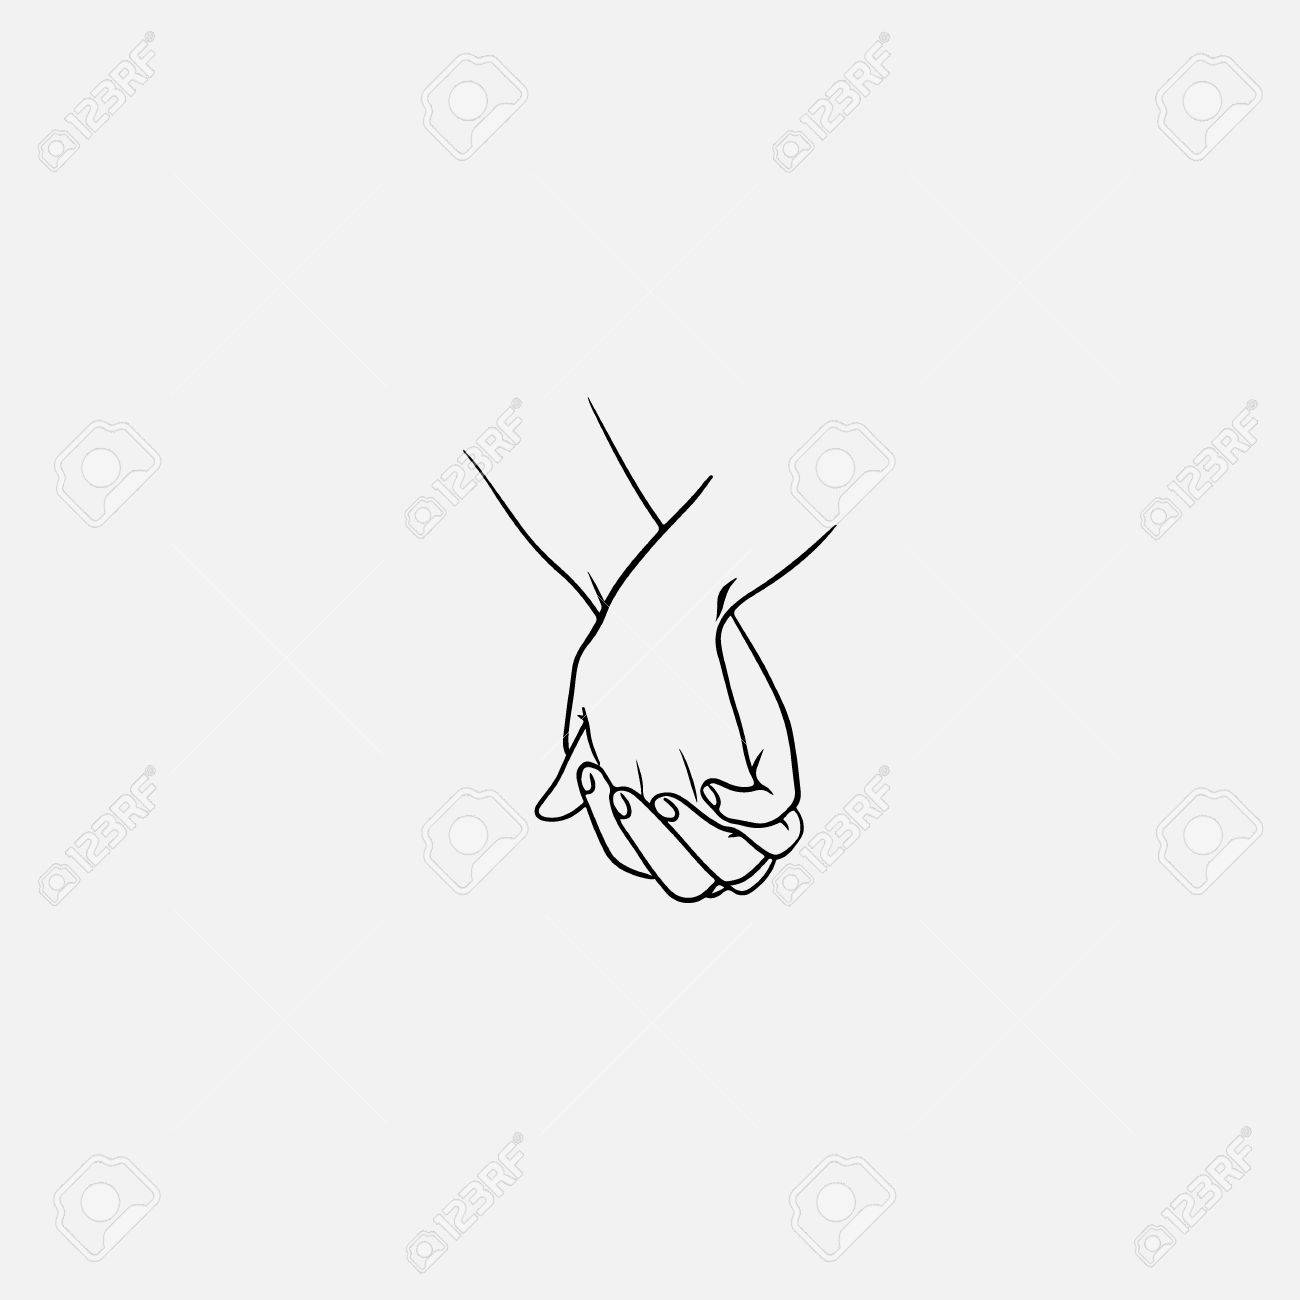 1300x1300 Holding Hands With Interlocked Or Intertwined Fingers Drawn By